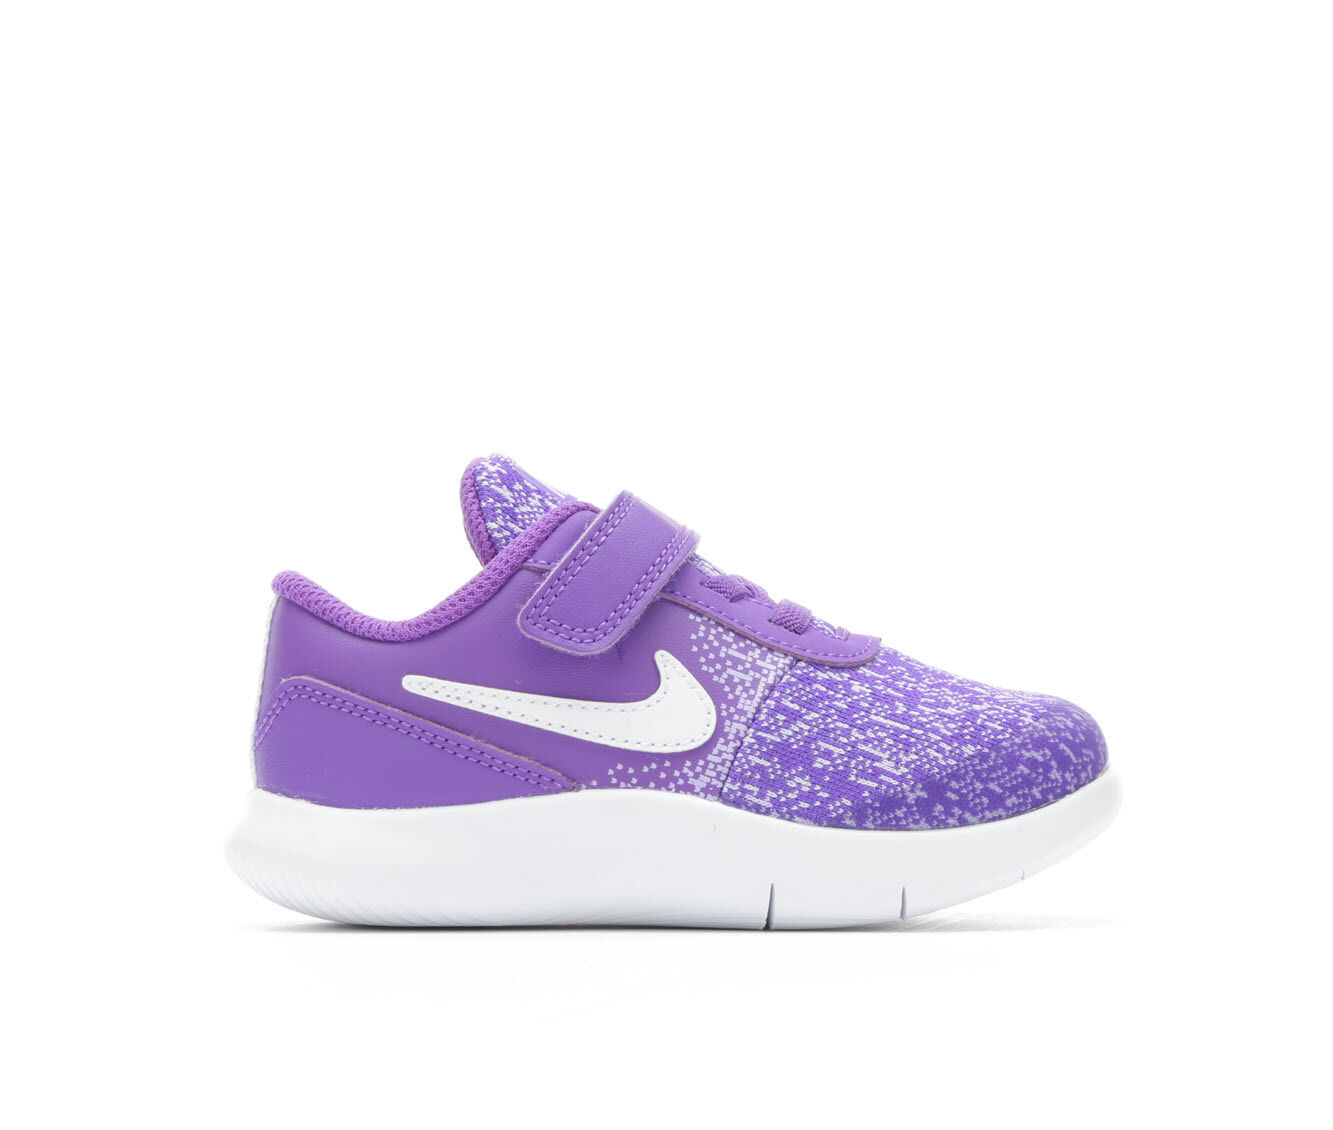 Girls Nike Infant Flex Contact Velcro Running Shoes